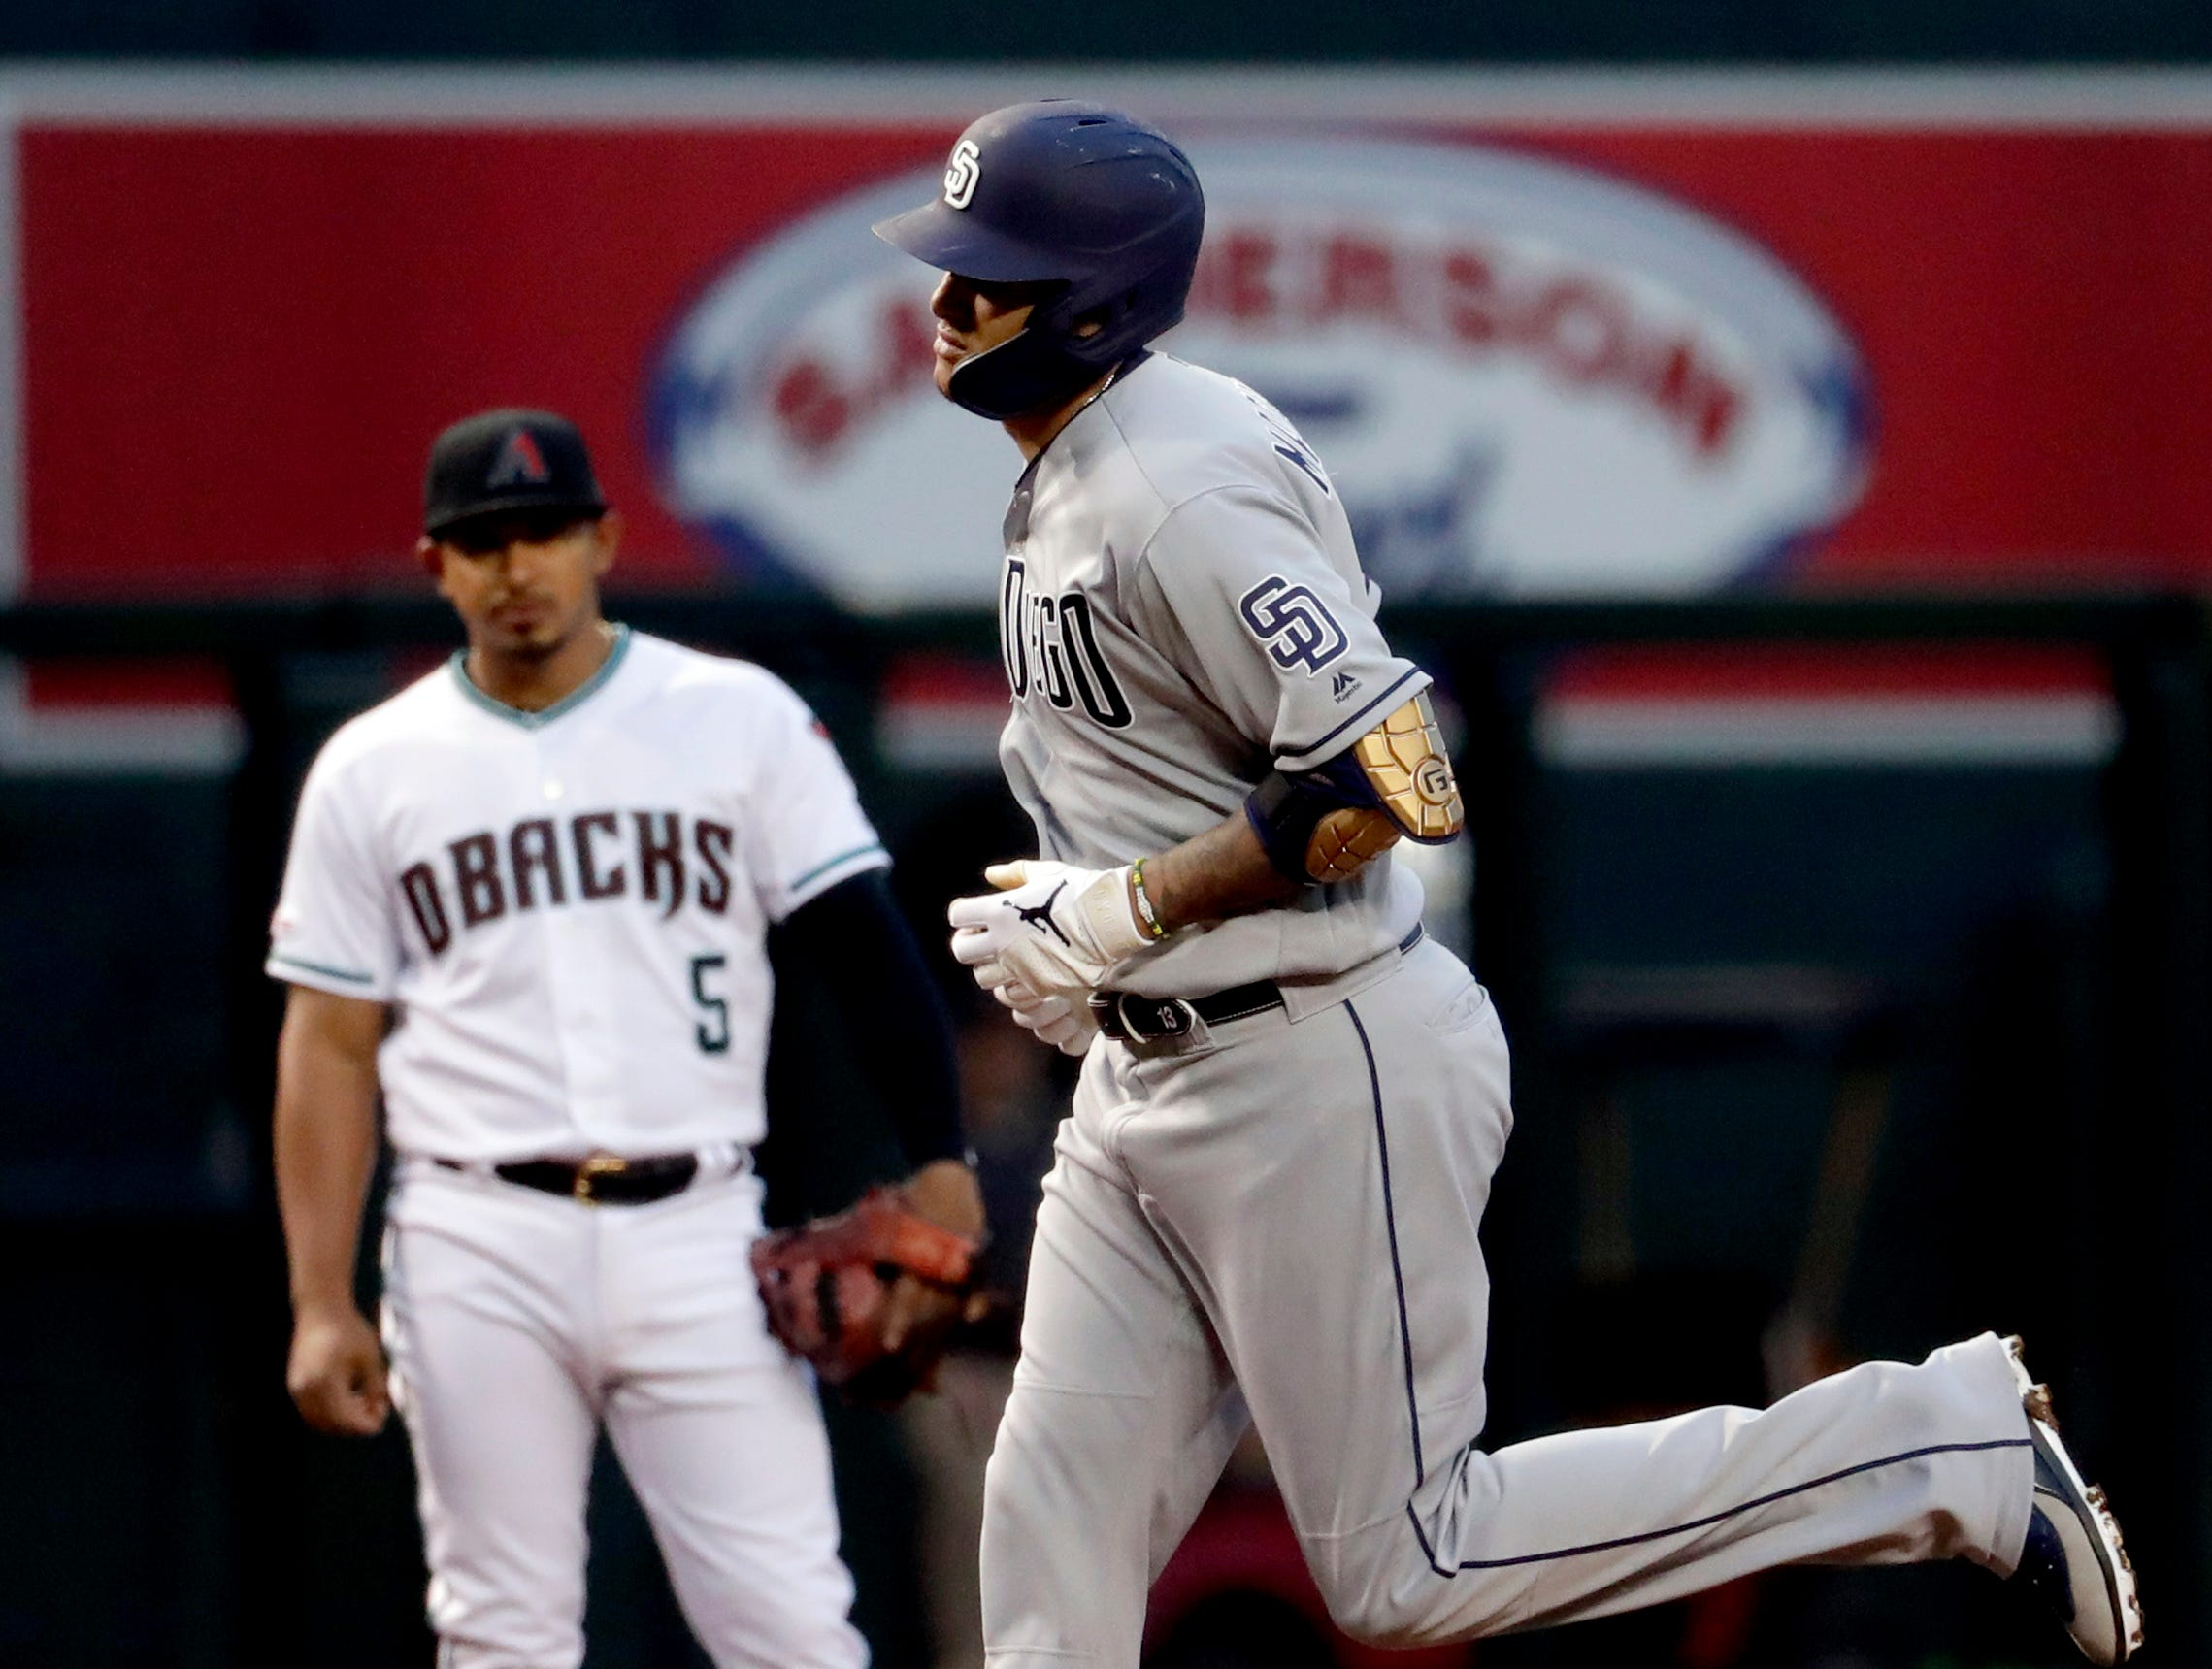 San Diego Padres' Manny Machado rounds the bases after hitting a solo home run as Arizona Diamondbacks Eduardo Escobar (5) looks on during the first inning of a baseball game, Friday, April 12, 2019, in Phoenix. (AP Photo/Matt York)